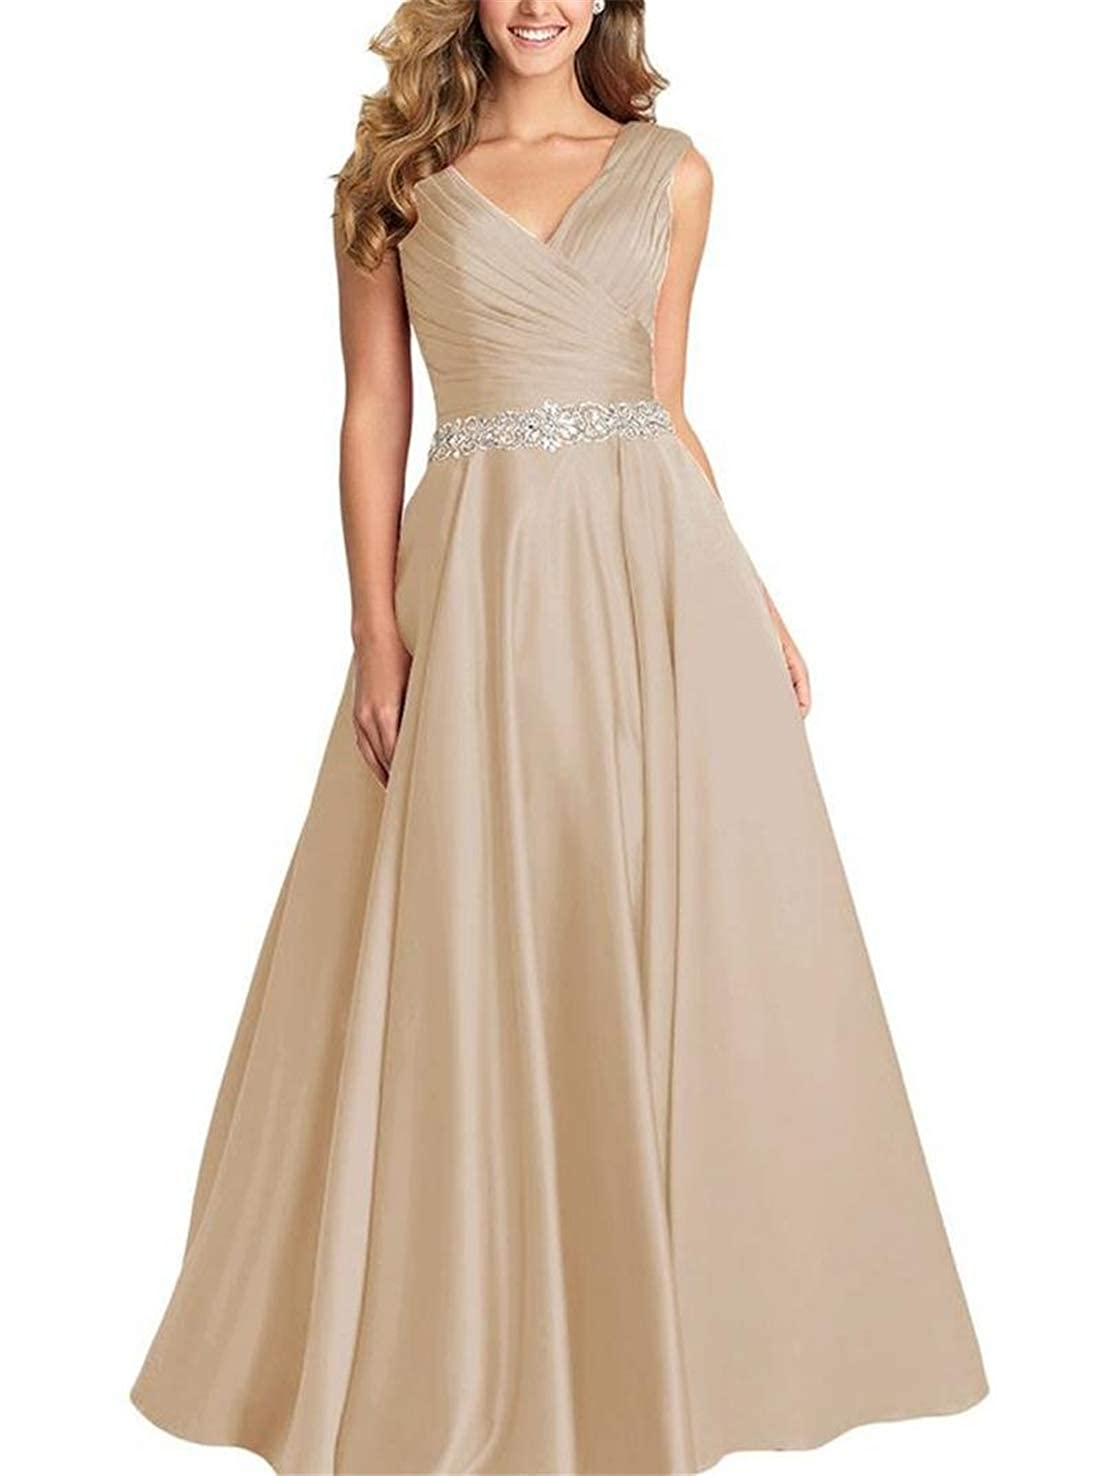 Champagne Stylefun Womens Long Beaded Prom Dress A Line VNeck Party Evening Gowns XIN004